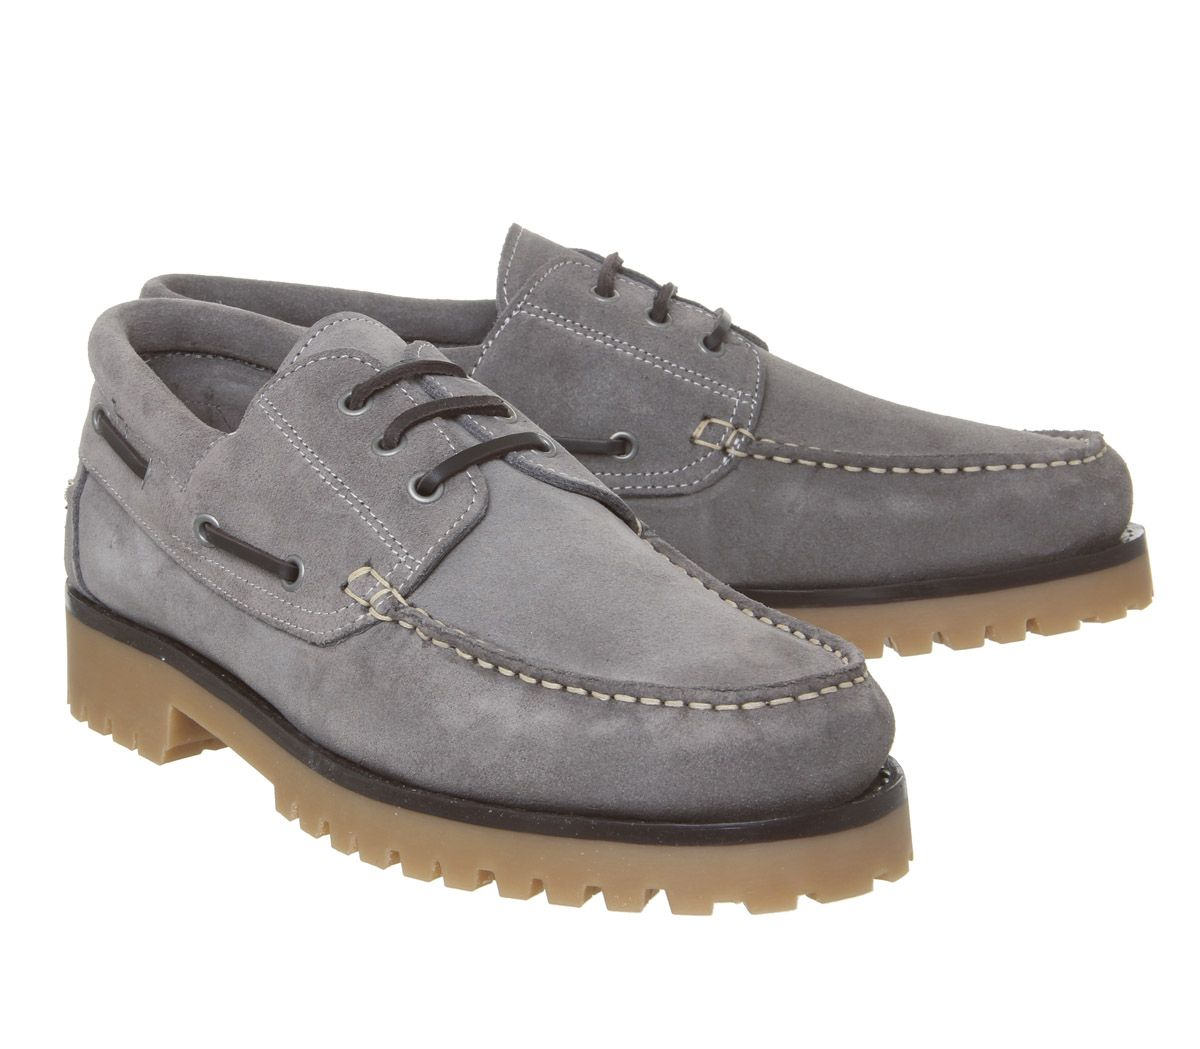 Mens-Office-Lug-Boat-Shoes-Grey-Suede-Casual-Shoes thumbnail 7